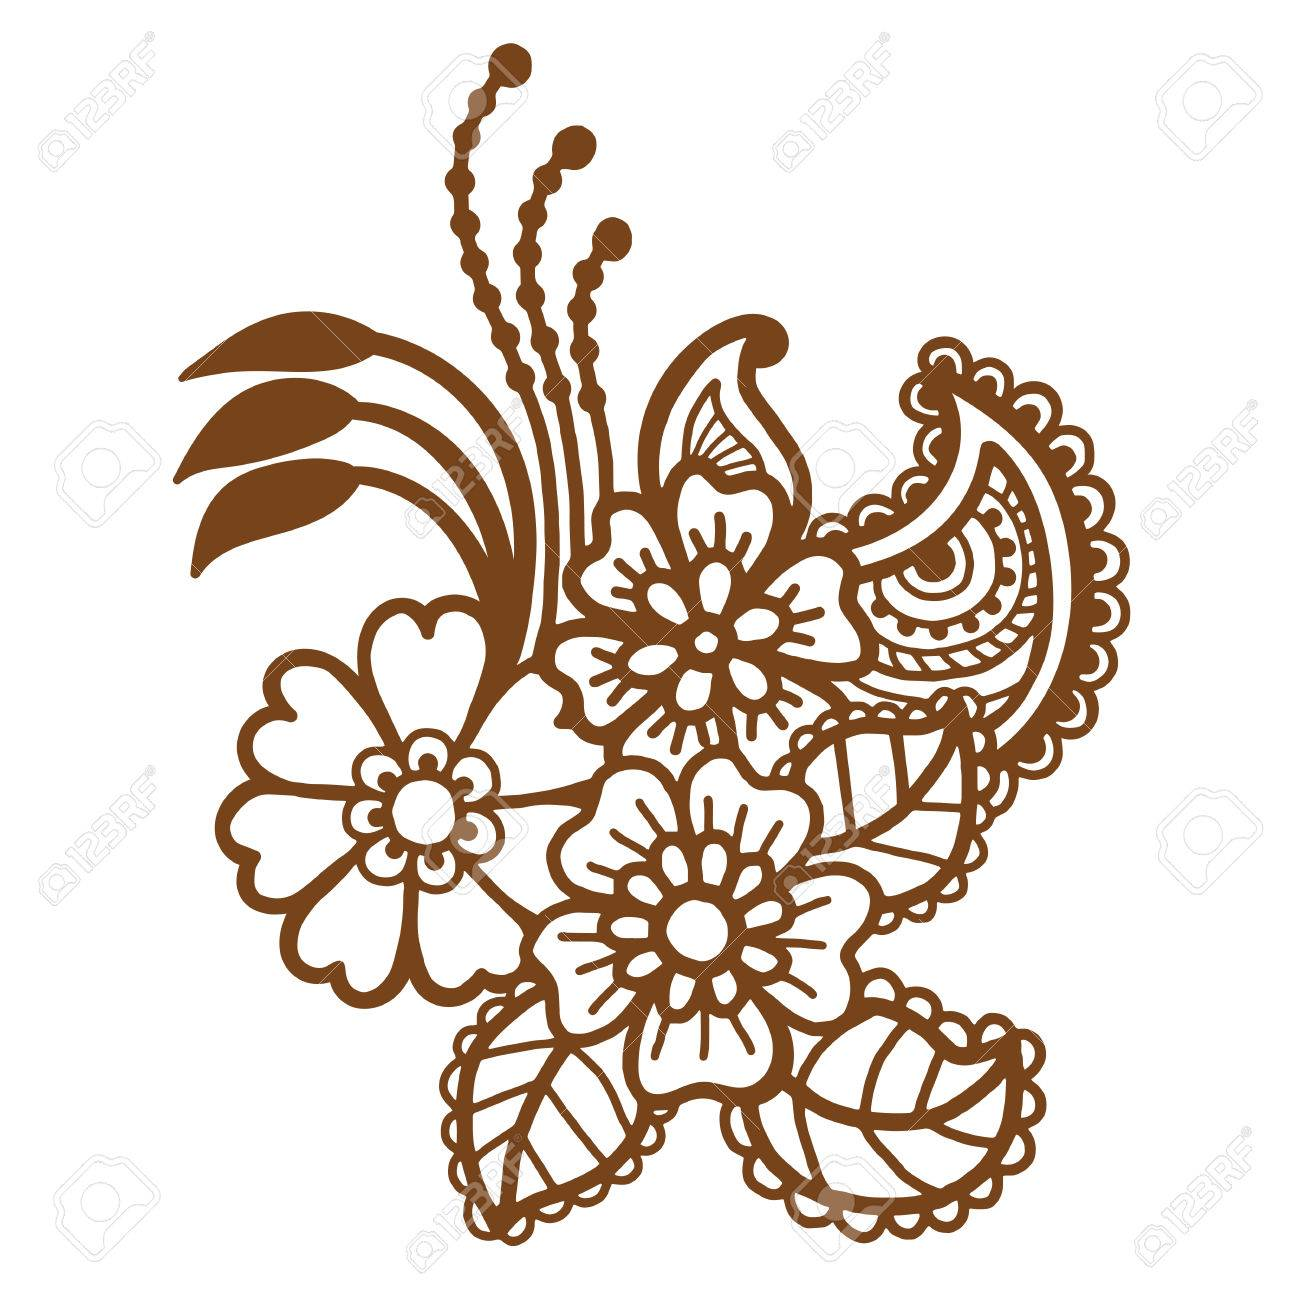 mehndi design floral abstract pattern vector illustration